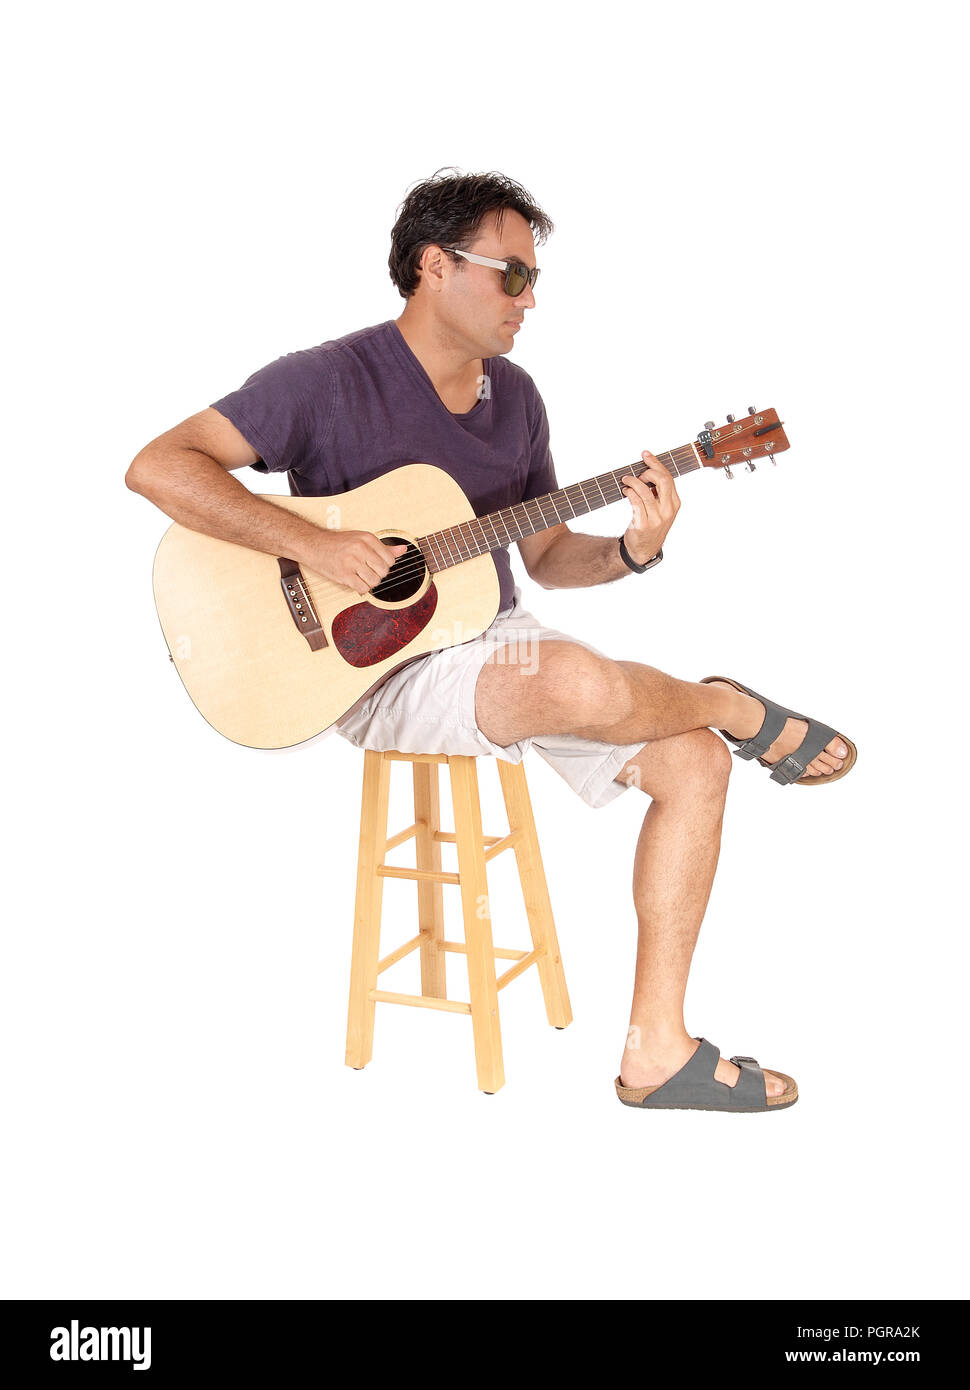 Guitar Stool Australia Acoustic Guitar Player Sitting Man Cut Out Stock Images Pictures